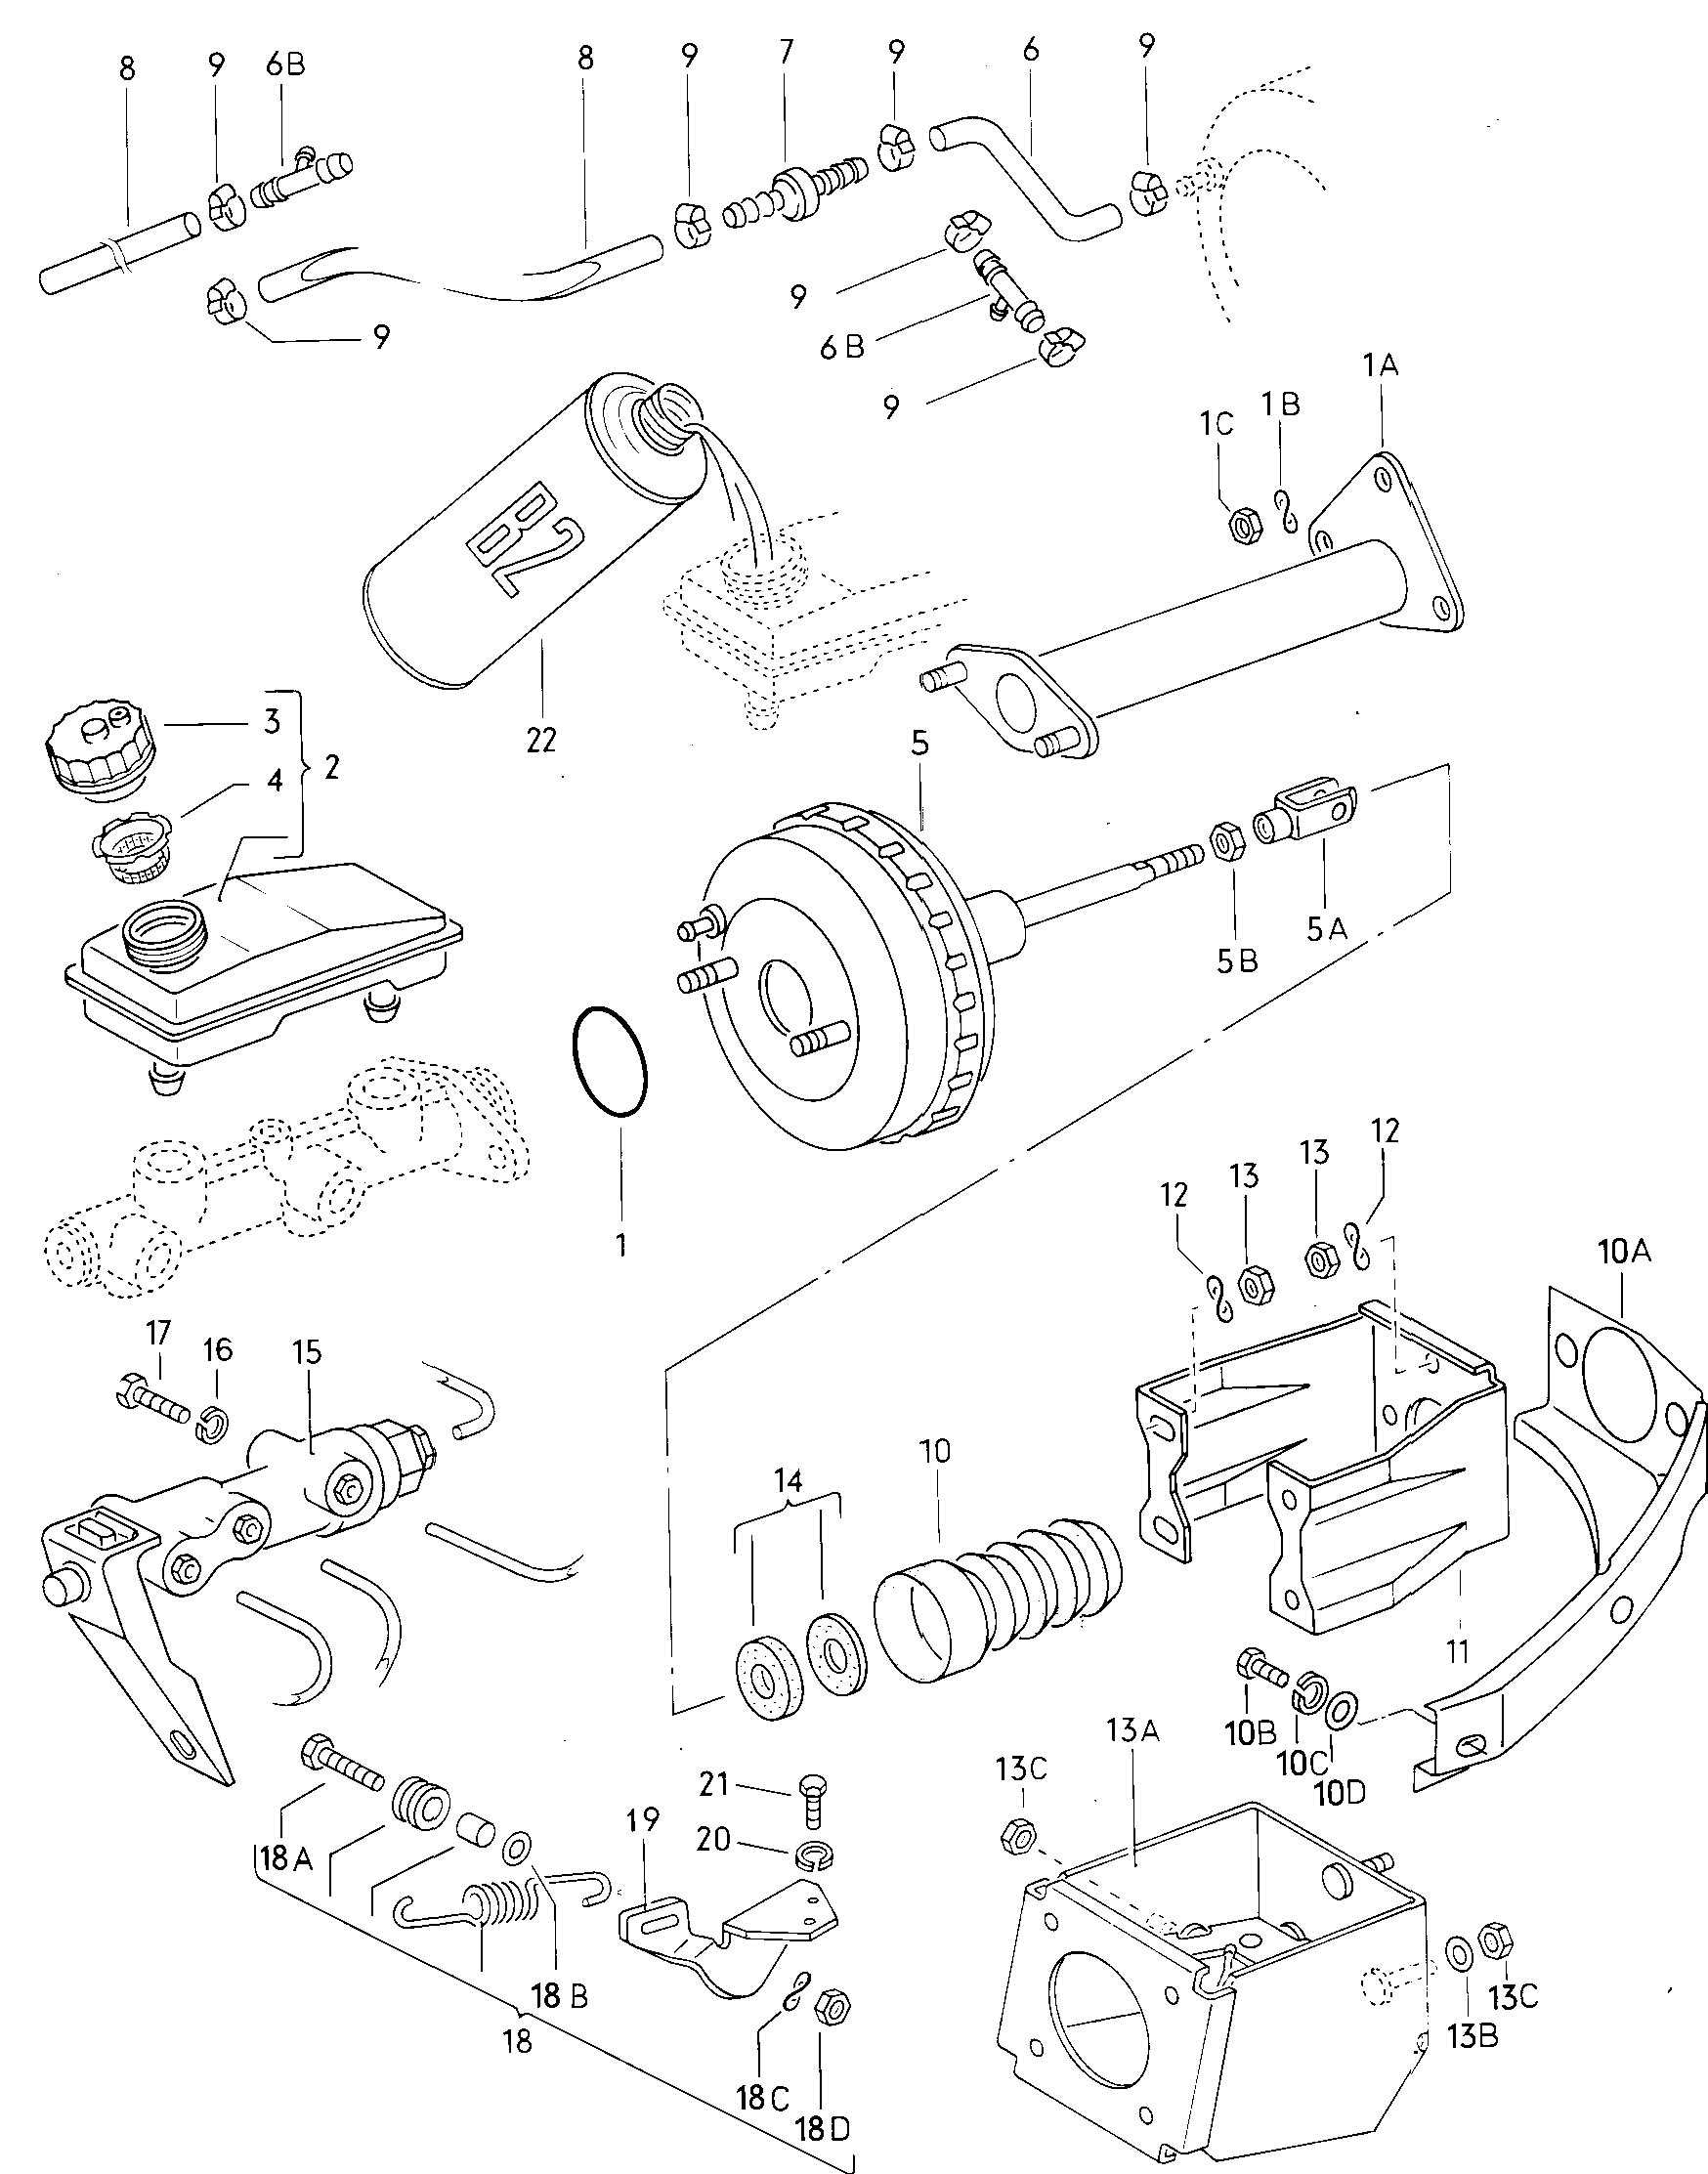 P 0900c152801bf6ee besides P 0900c152801c00e9 besides Engine Wiring Diagram 98 Jetta 2 0 likewise RepairGuideContent furthermore Chevy Cruze Cabin Air Filter Location. on vw passat brake booster